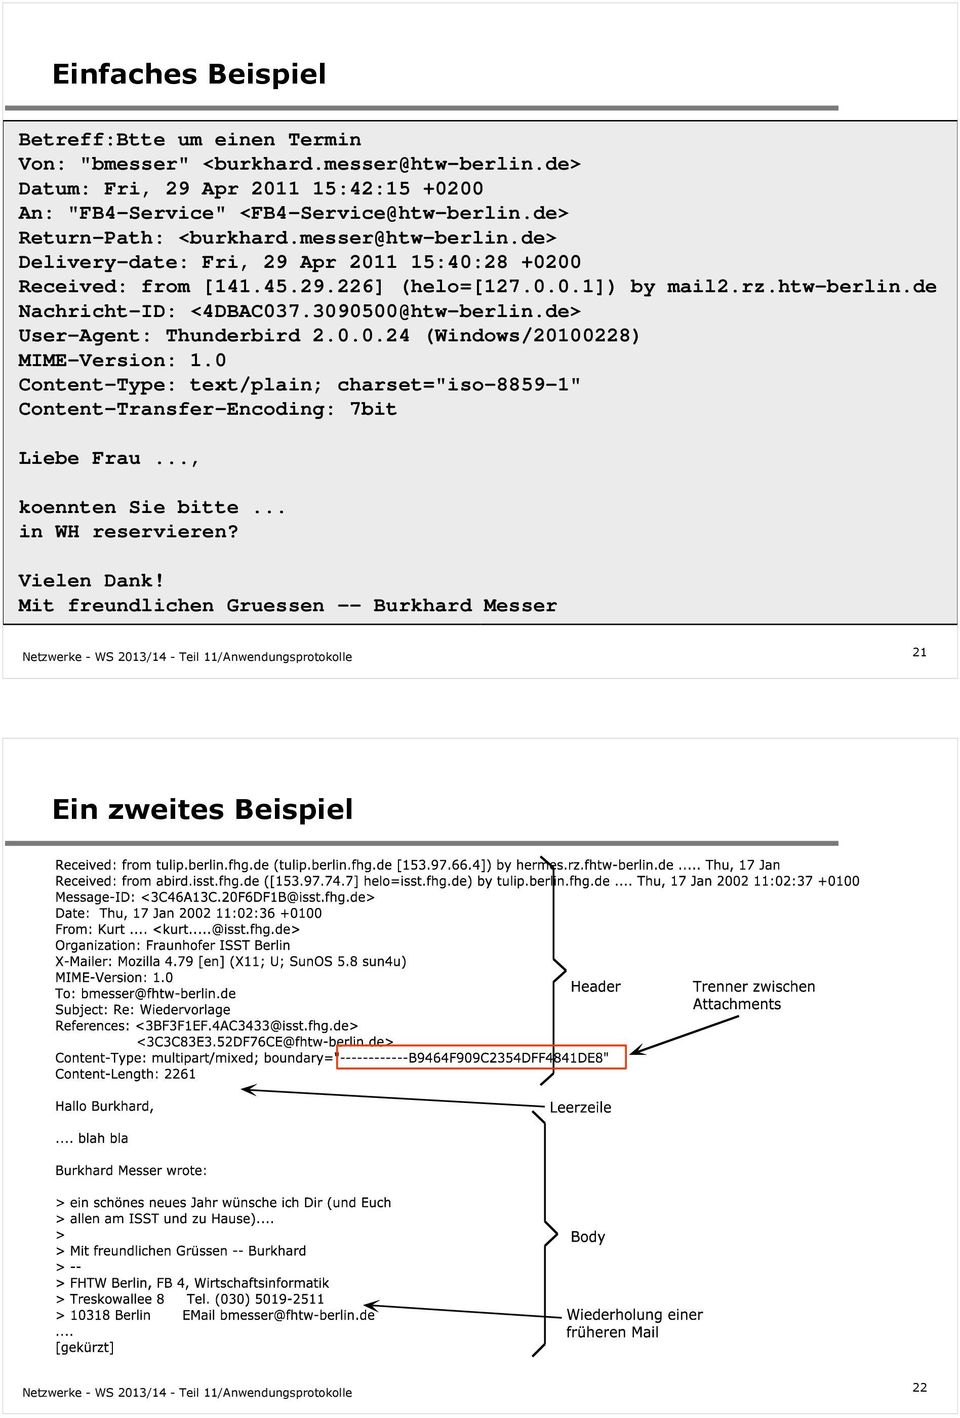 de> Delivery-date: Fri, 29 Apr 2011 15:40:28 +0200 Received: from [141.45.29.226] (helo=[127.0.0.1]) by mail2.rz.htw-berlin.de Nachricht-ID: <4DBAC037.3090500@htw-berlin.